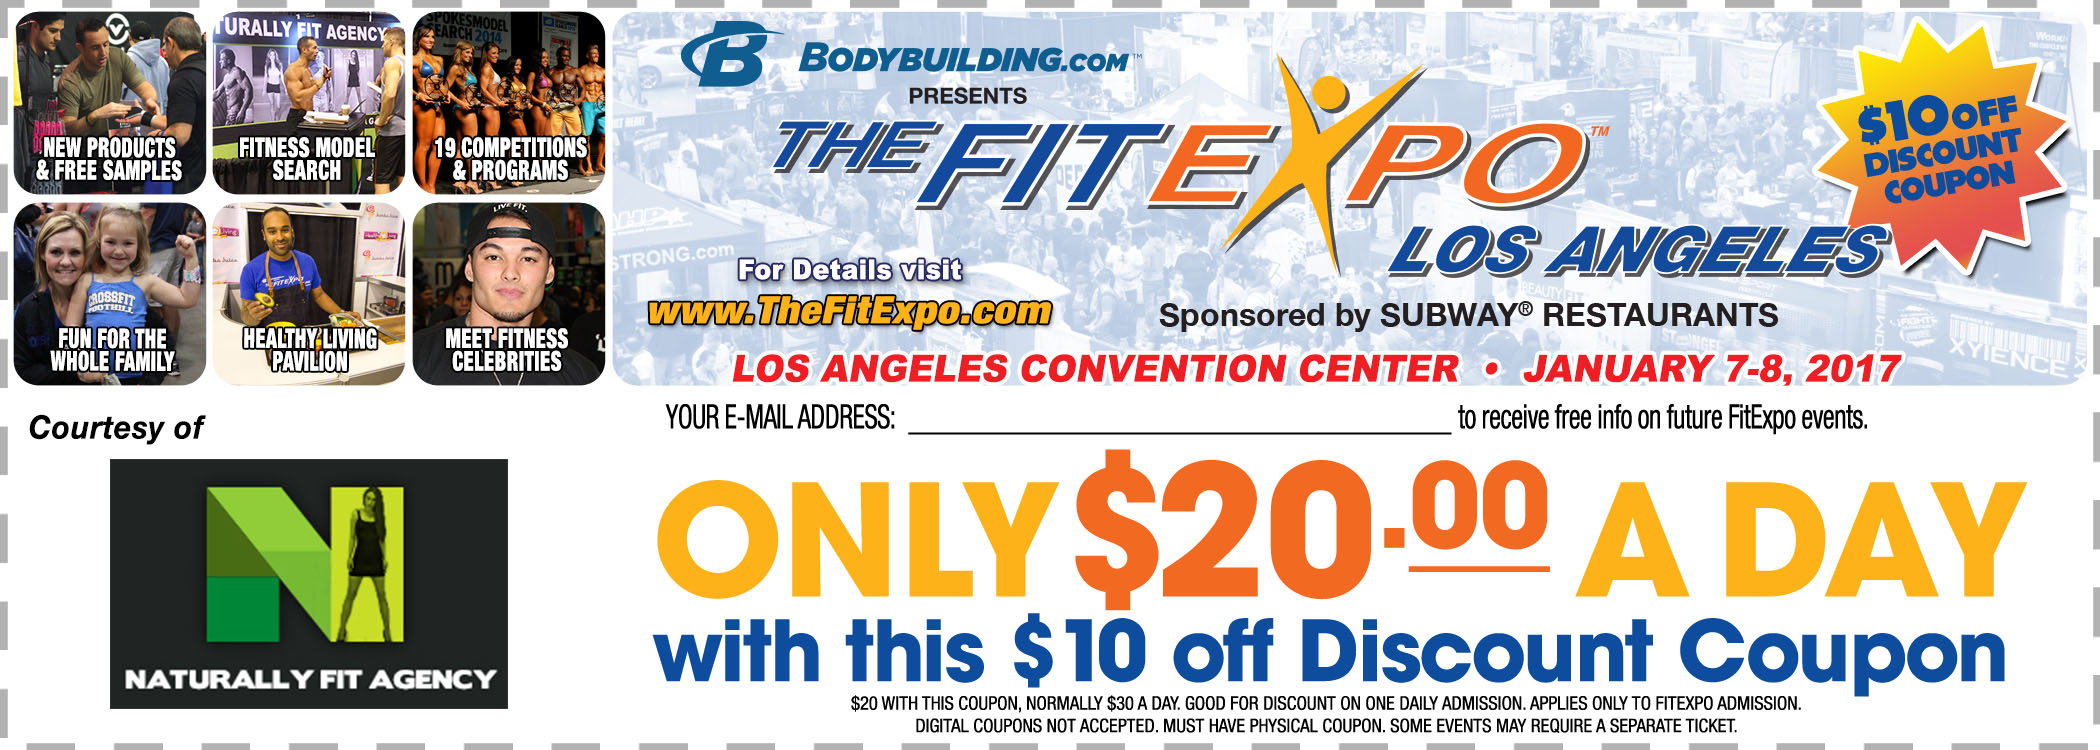 FitExpo_coupon.jpg